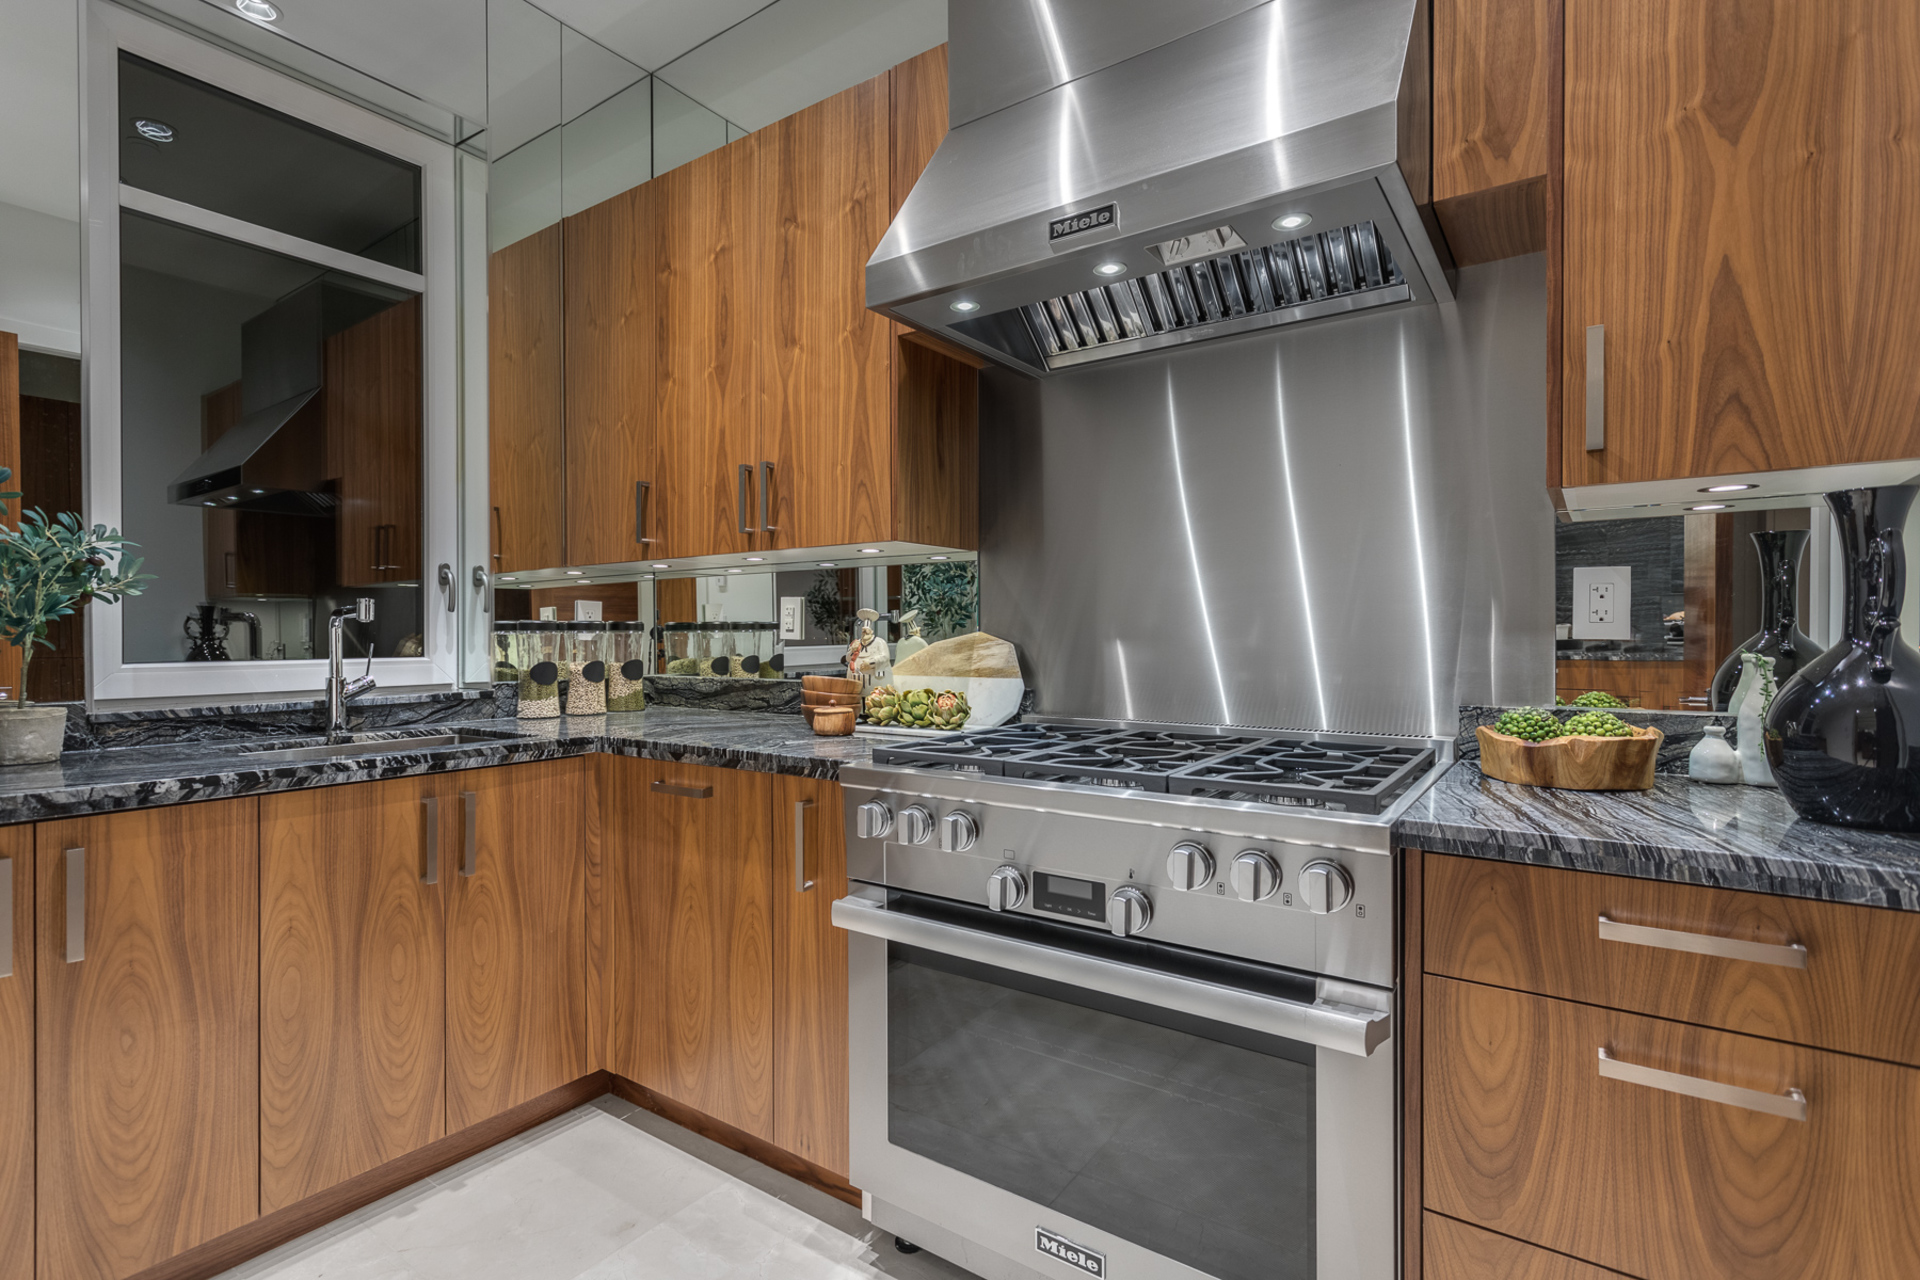 at 595 King Georges Way, British Properties (British Properties), West Vancouver